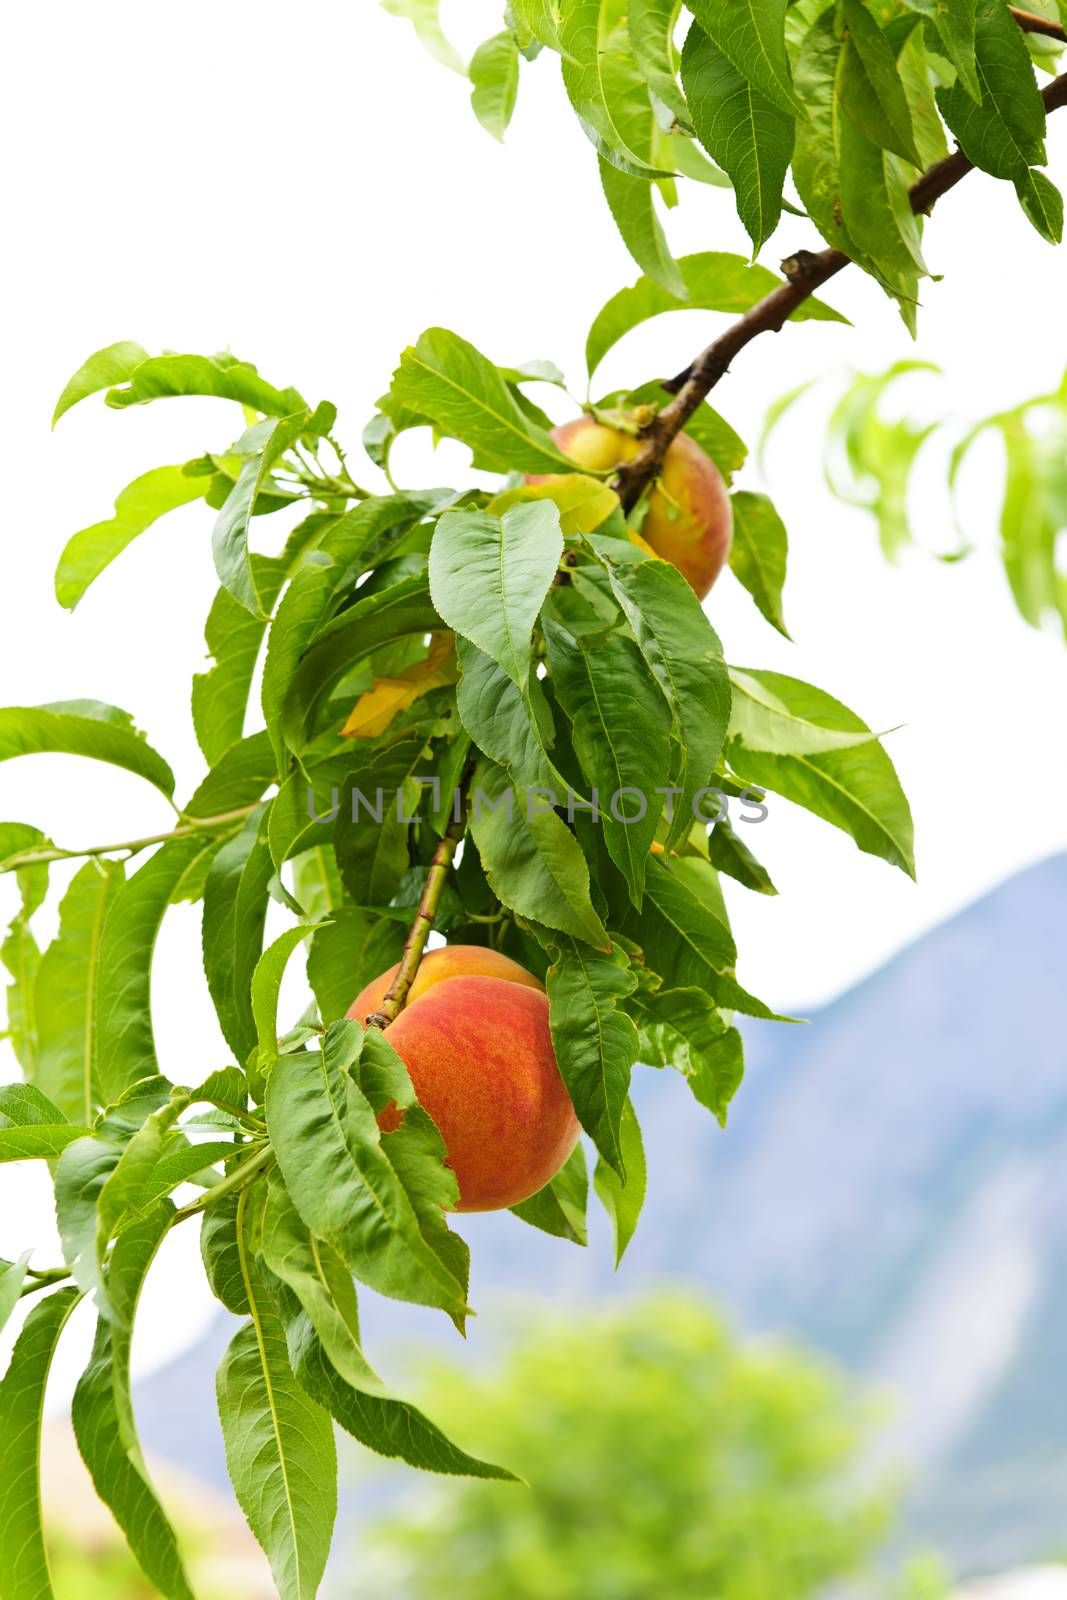 Ripe peaches ready to pick on tree branch